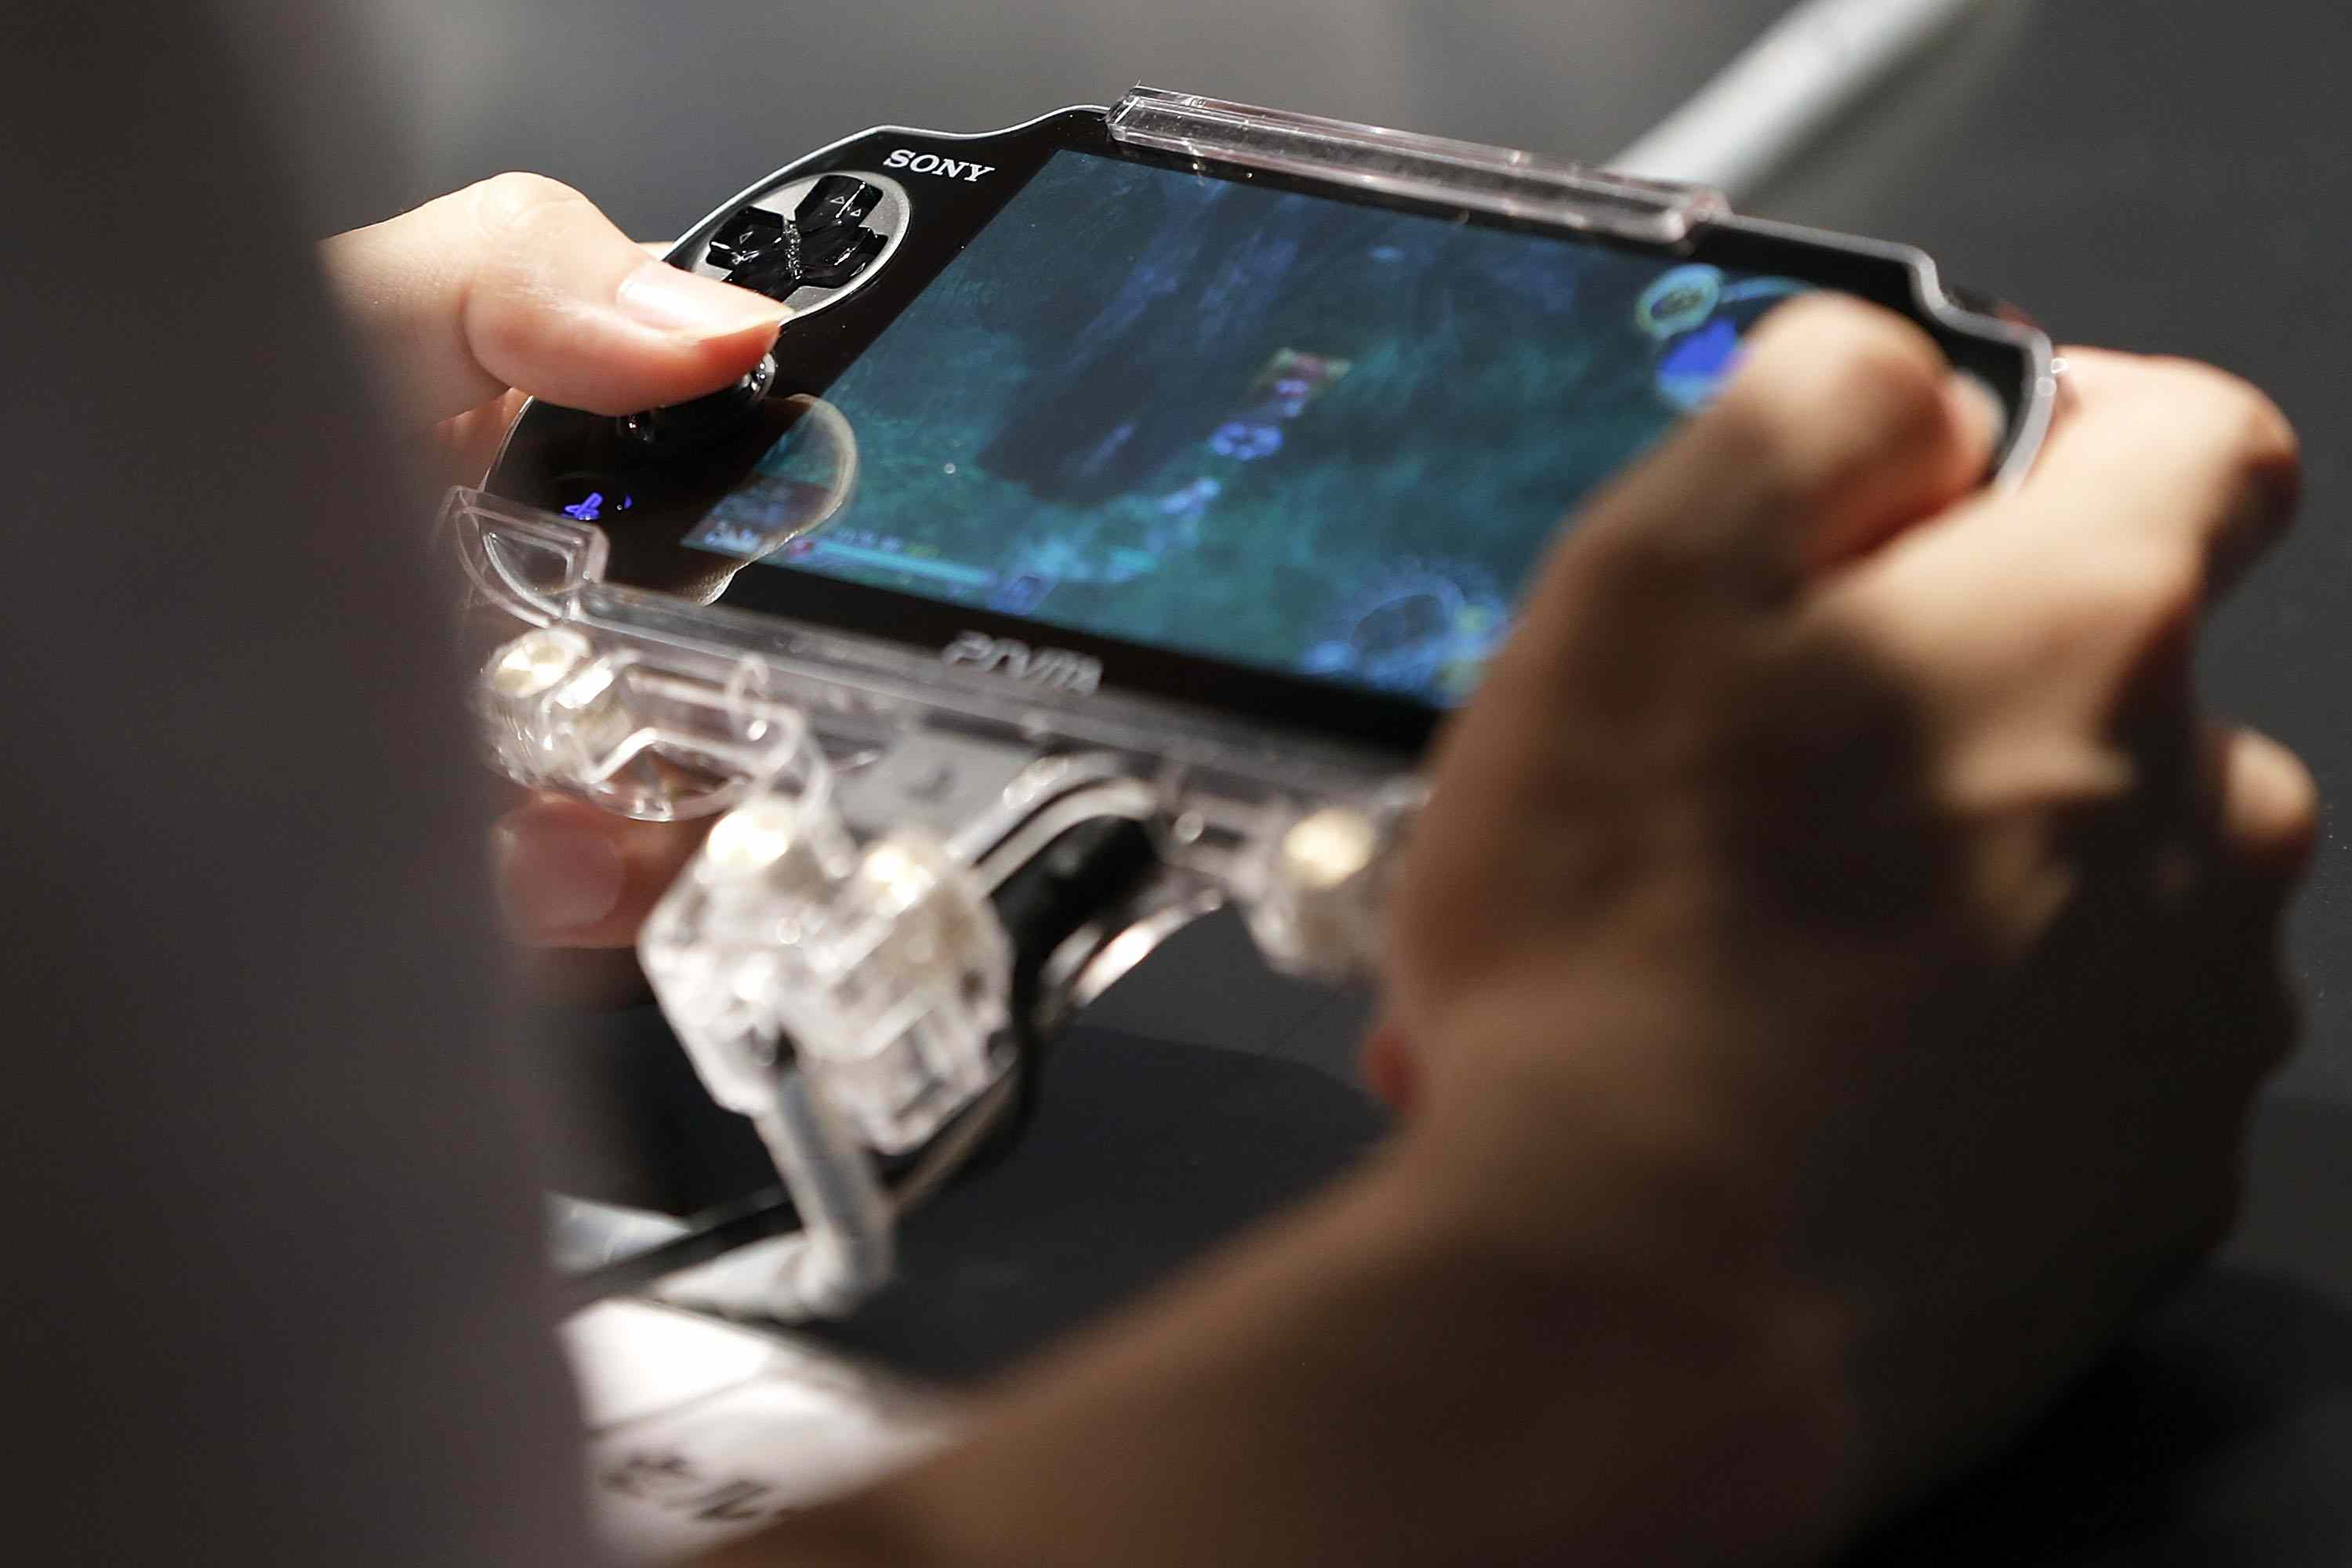 6 Ways The Ps Vita Is Better Than The Psp